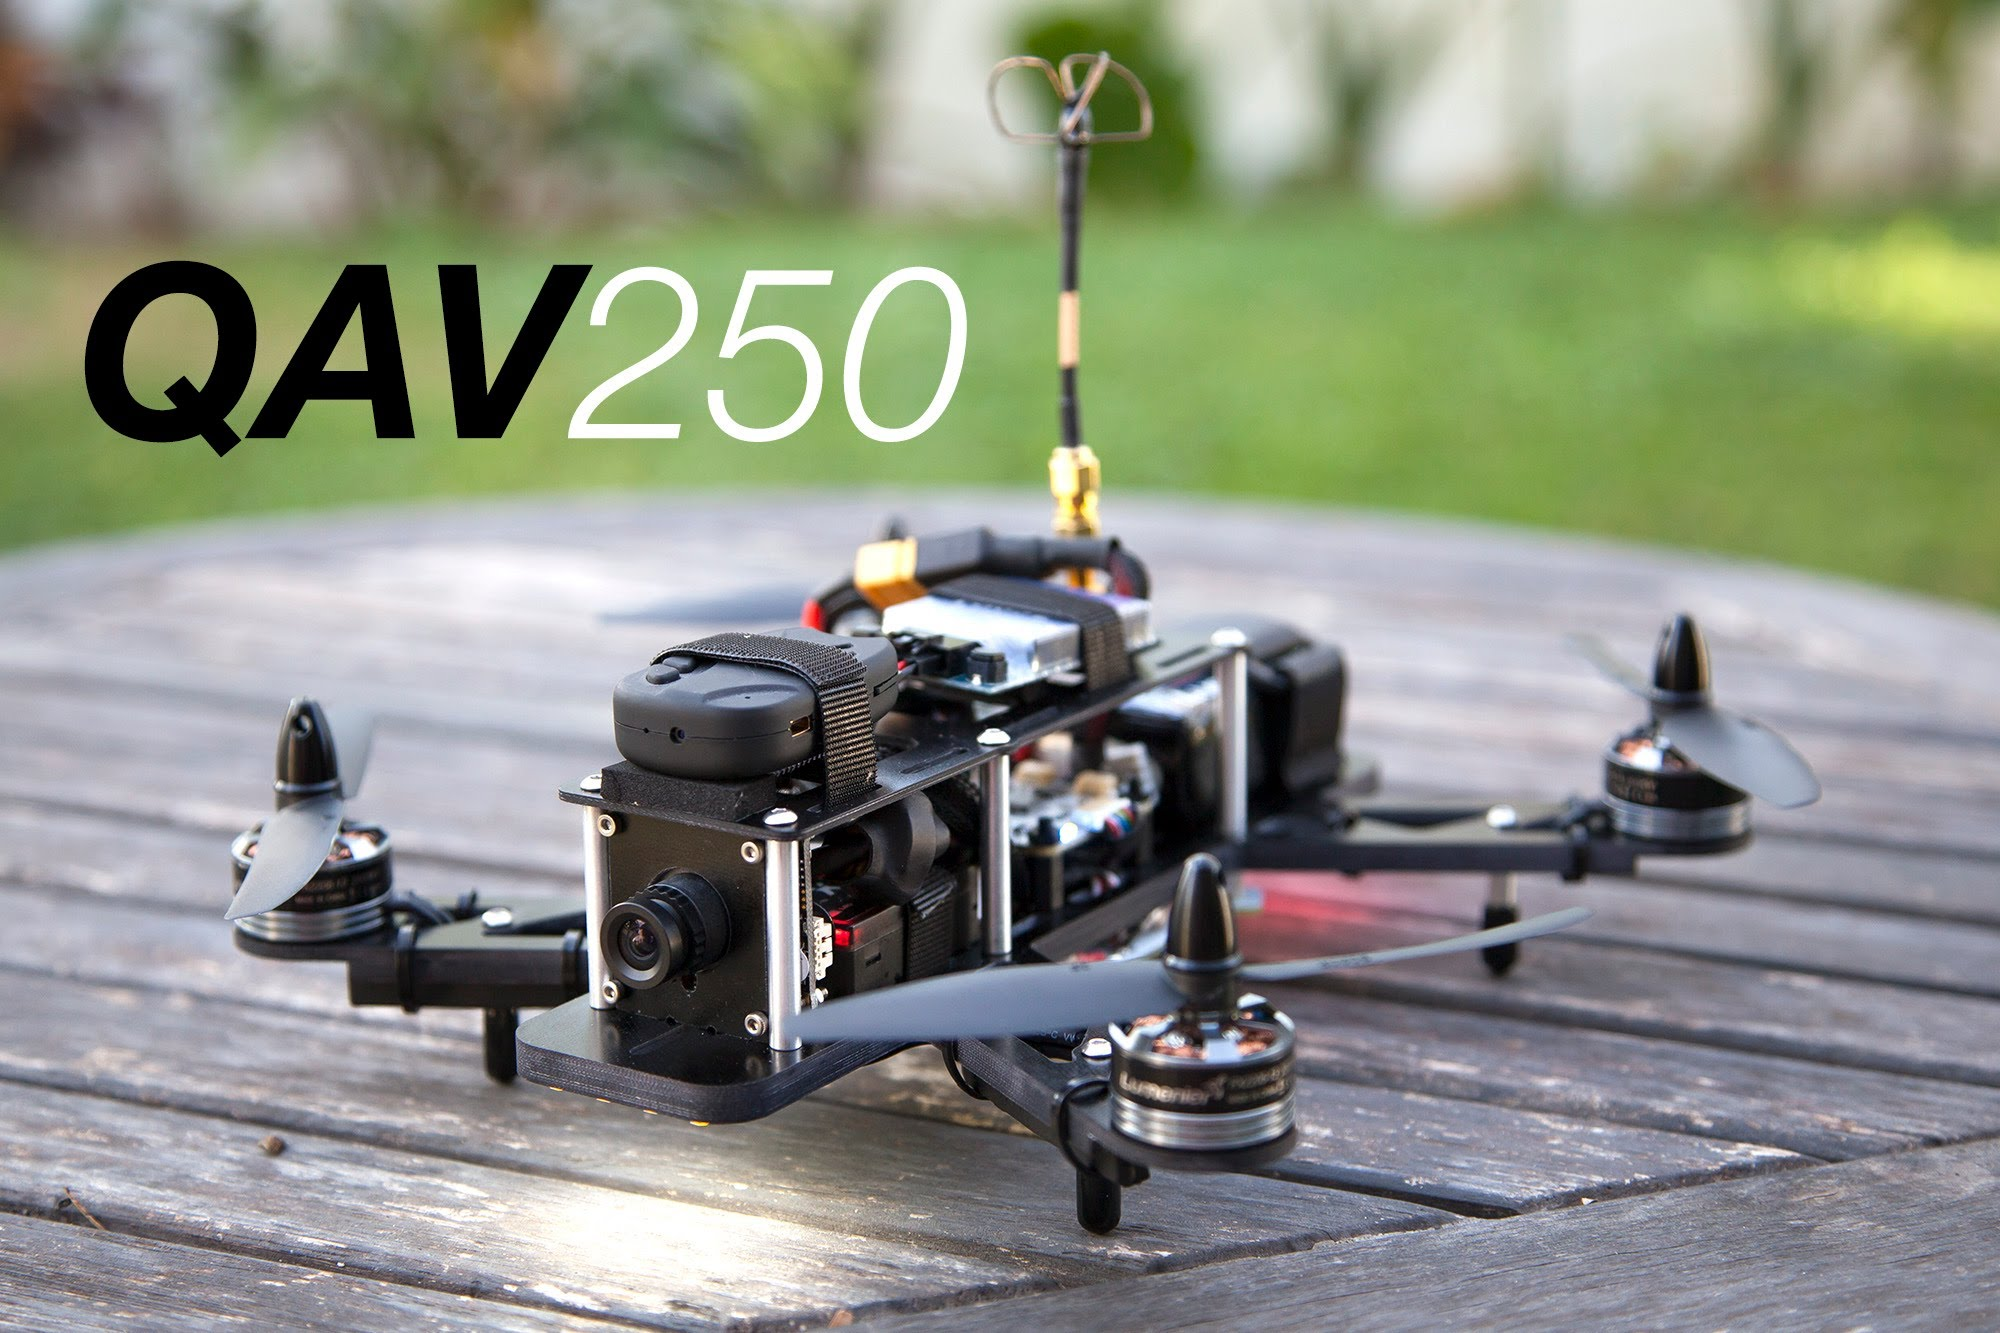 A little different but still in this category, the Lumenier QAV250 has enjoyed immense success as an FPV racing platform. Videos recorded from these are typically fast-paced and aerobatic. While, these are typically more of a Do-it-yourself kit option, plenty of resources abound on building one. It is worth noting Lumenier sells 500-sized quads (and other sizes) as well.